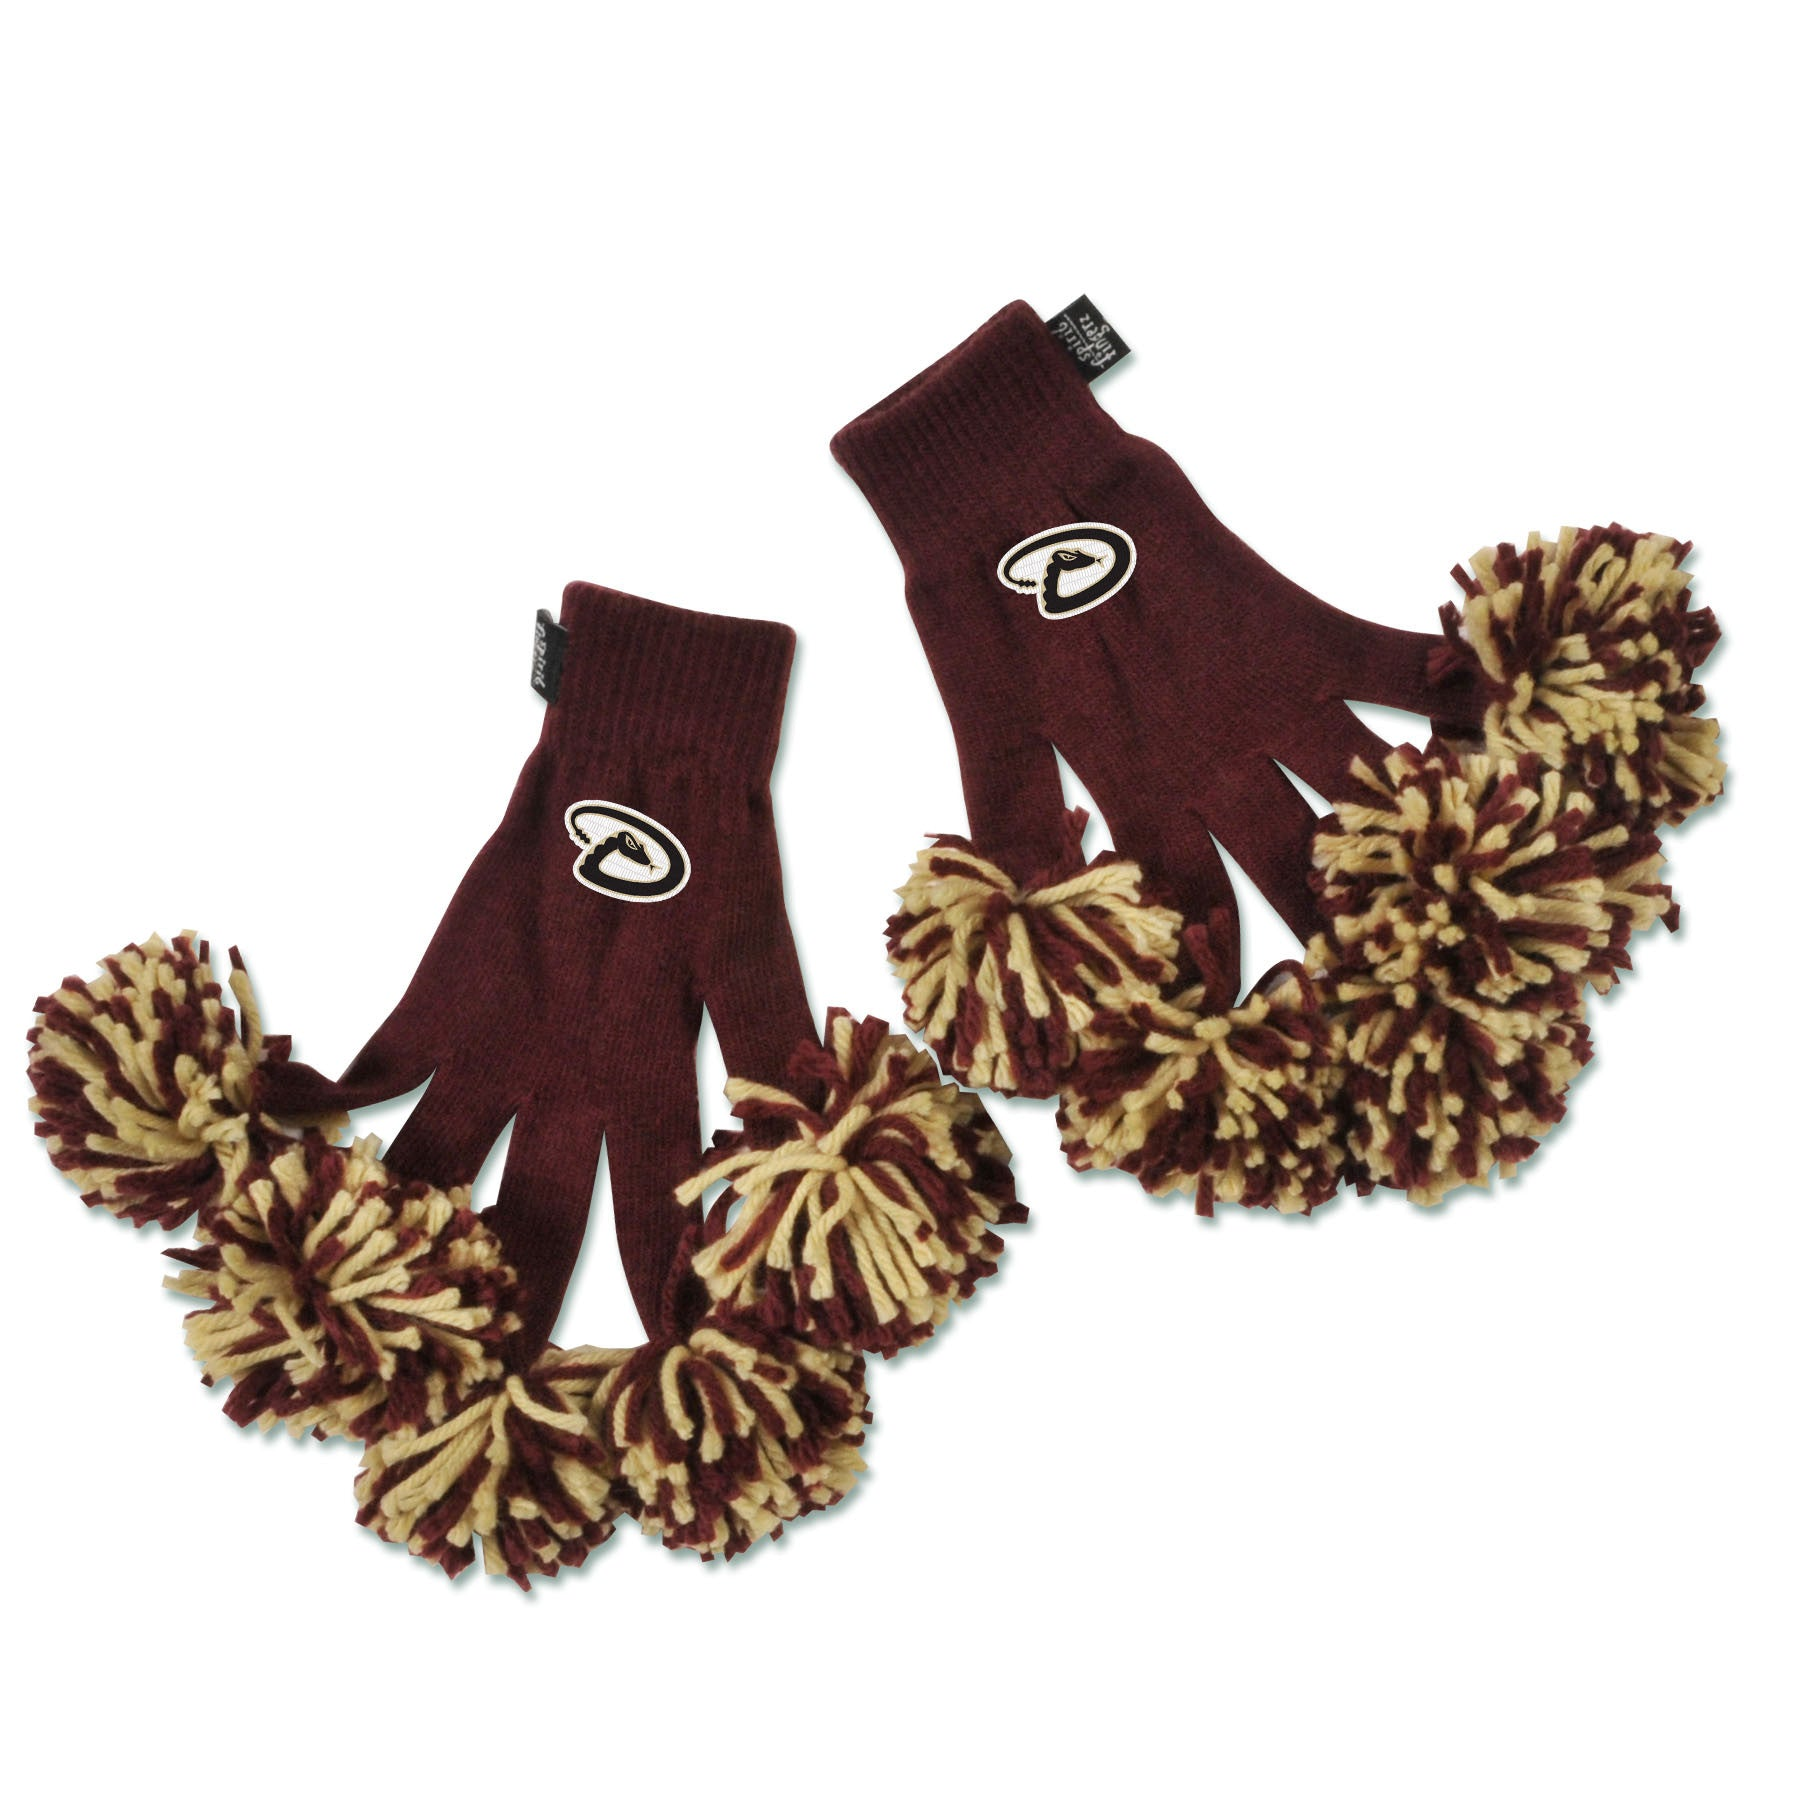 Arizona Diamondbacks MLB Spirit Fingerz Cheerleading Pom-Pom Gloves